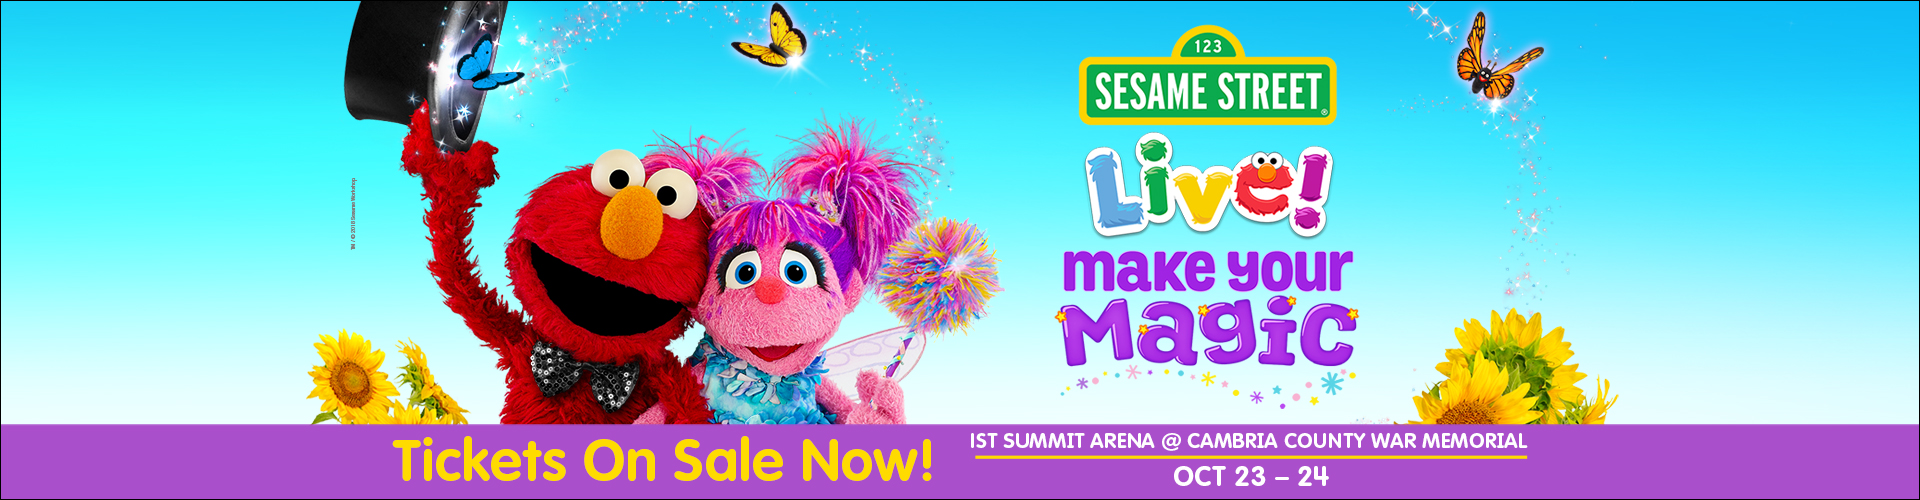 Elmo and Abby posing together for Sesame Street Live Make Your Magic. Tickets on sale now for 1st Summit Arena at Cambria County War Memorial on October 23 and 24.